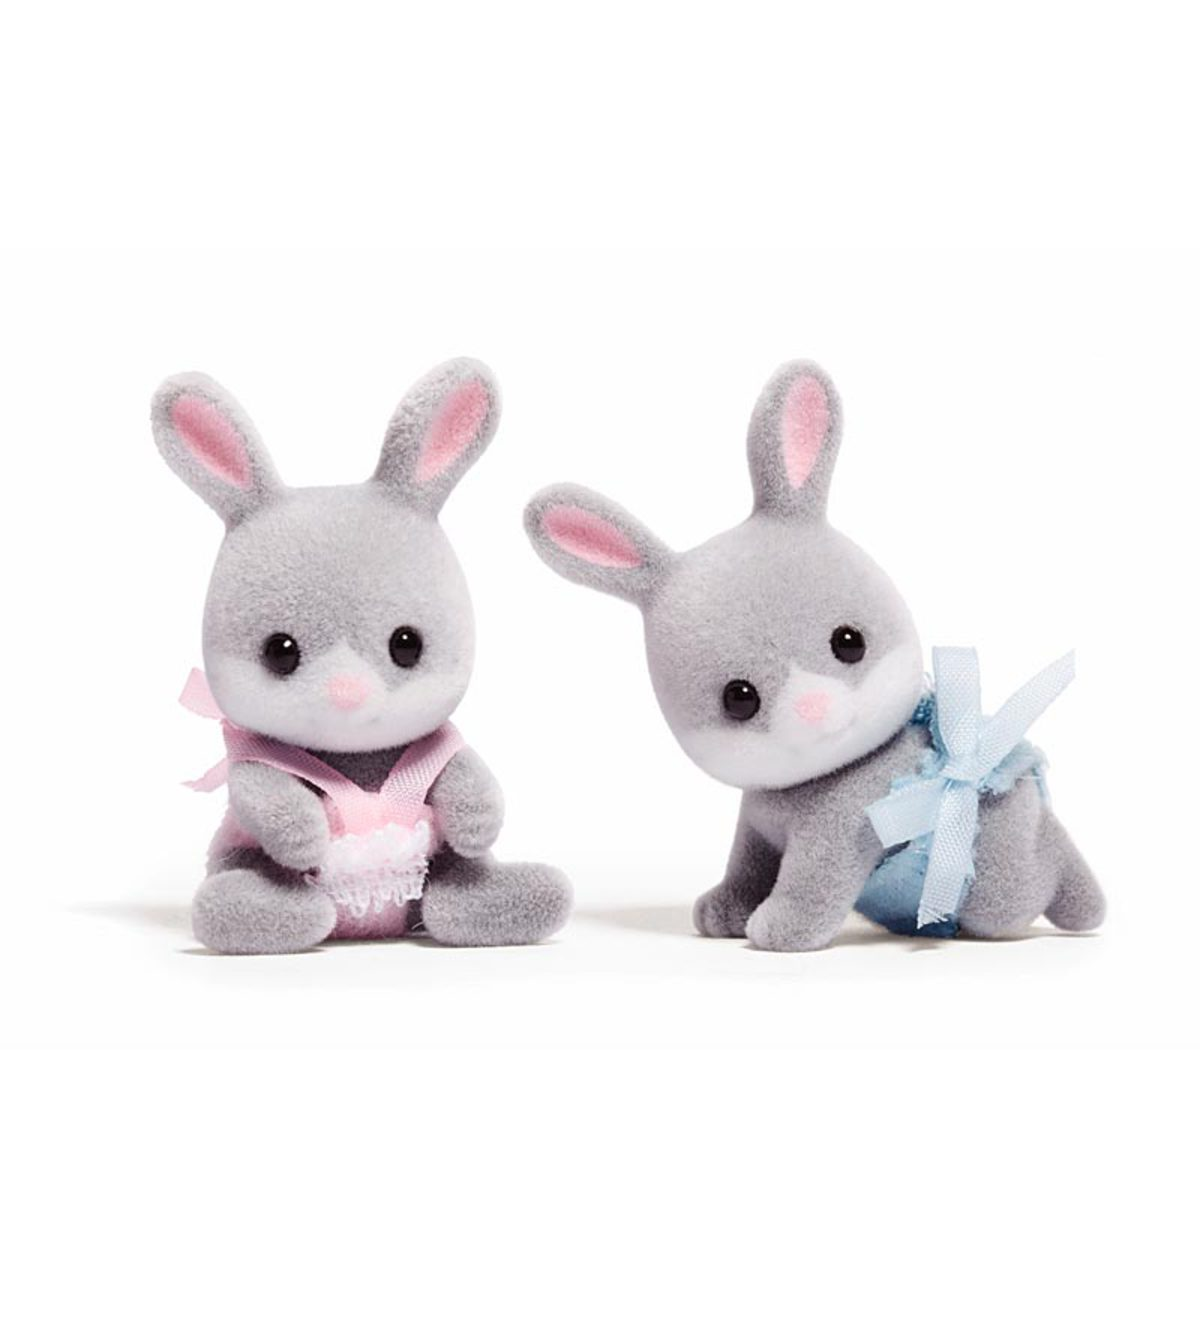 Cottontail Rabbit Twins (set of 2)